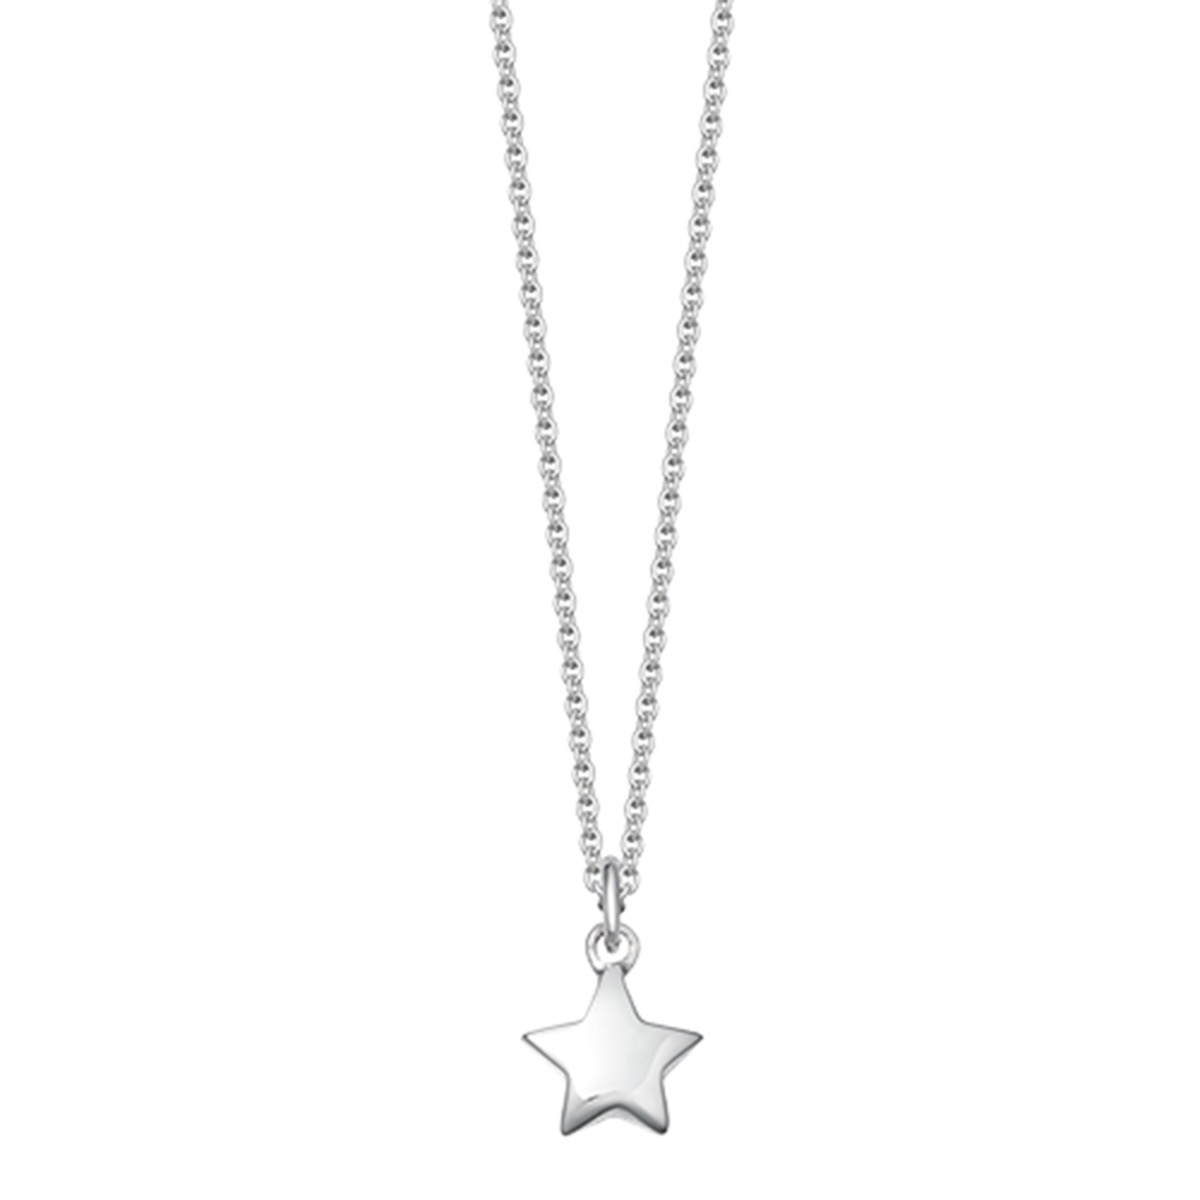 240bbd0ce Silver Star Pendant Necklace | Hersey & Son Silversmiths